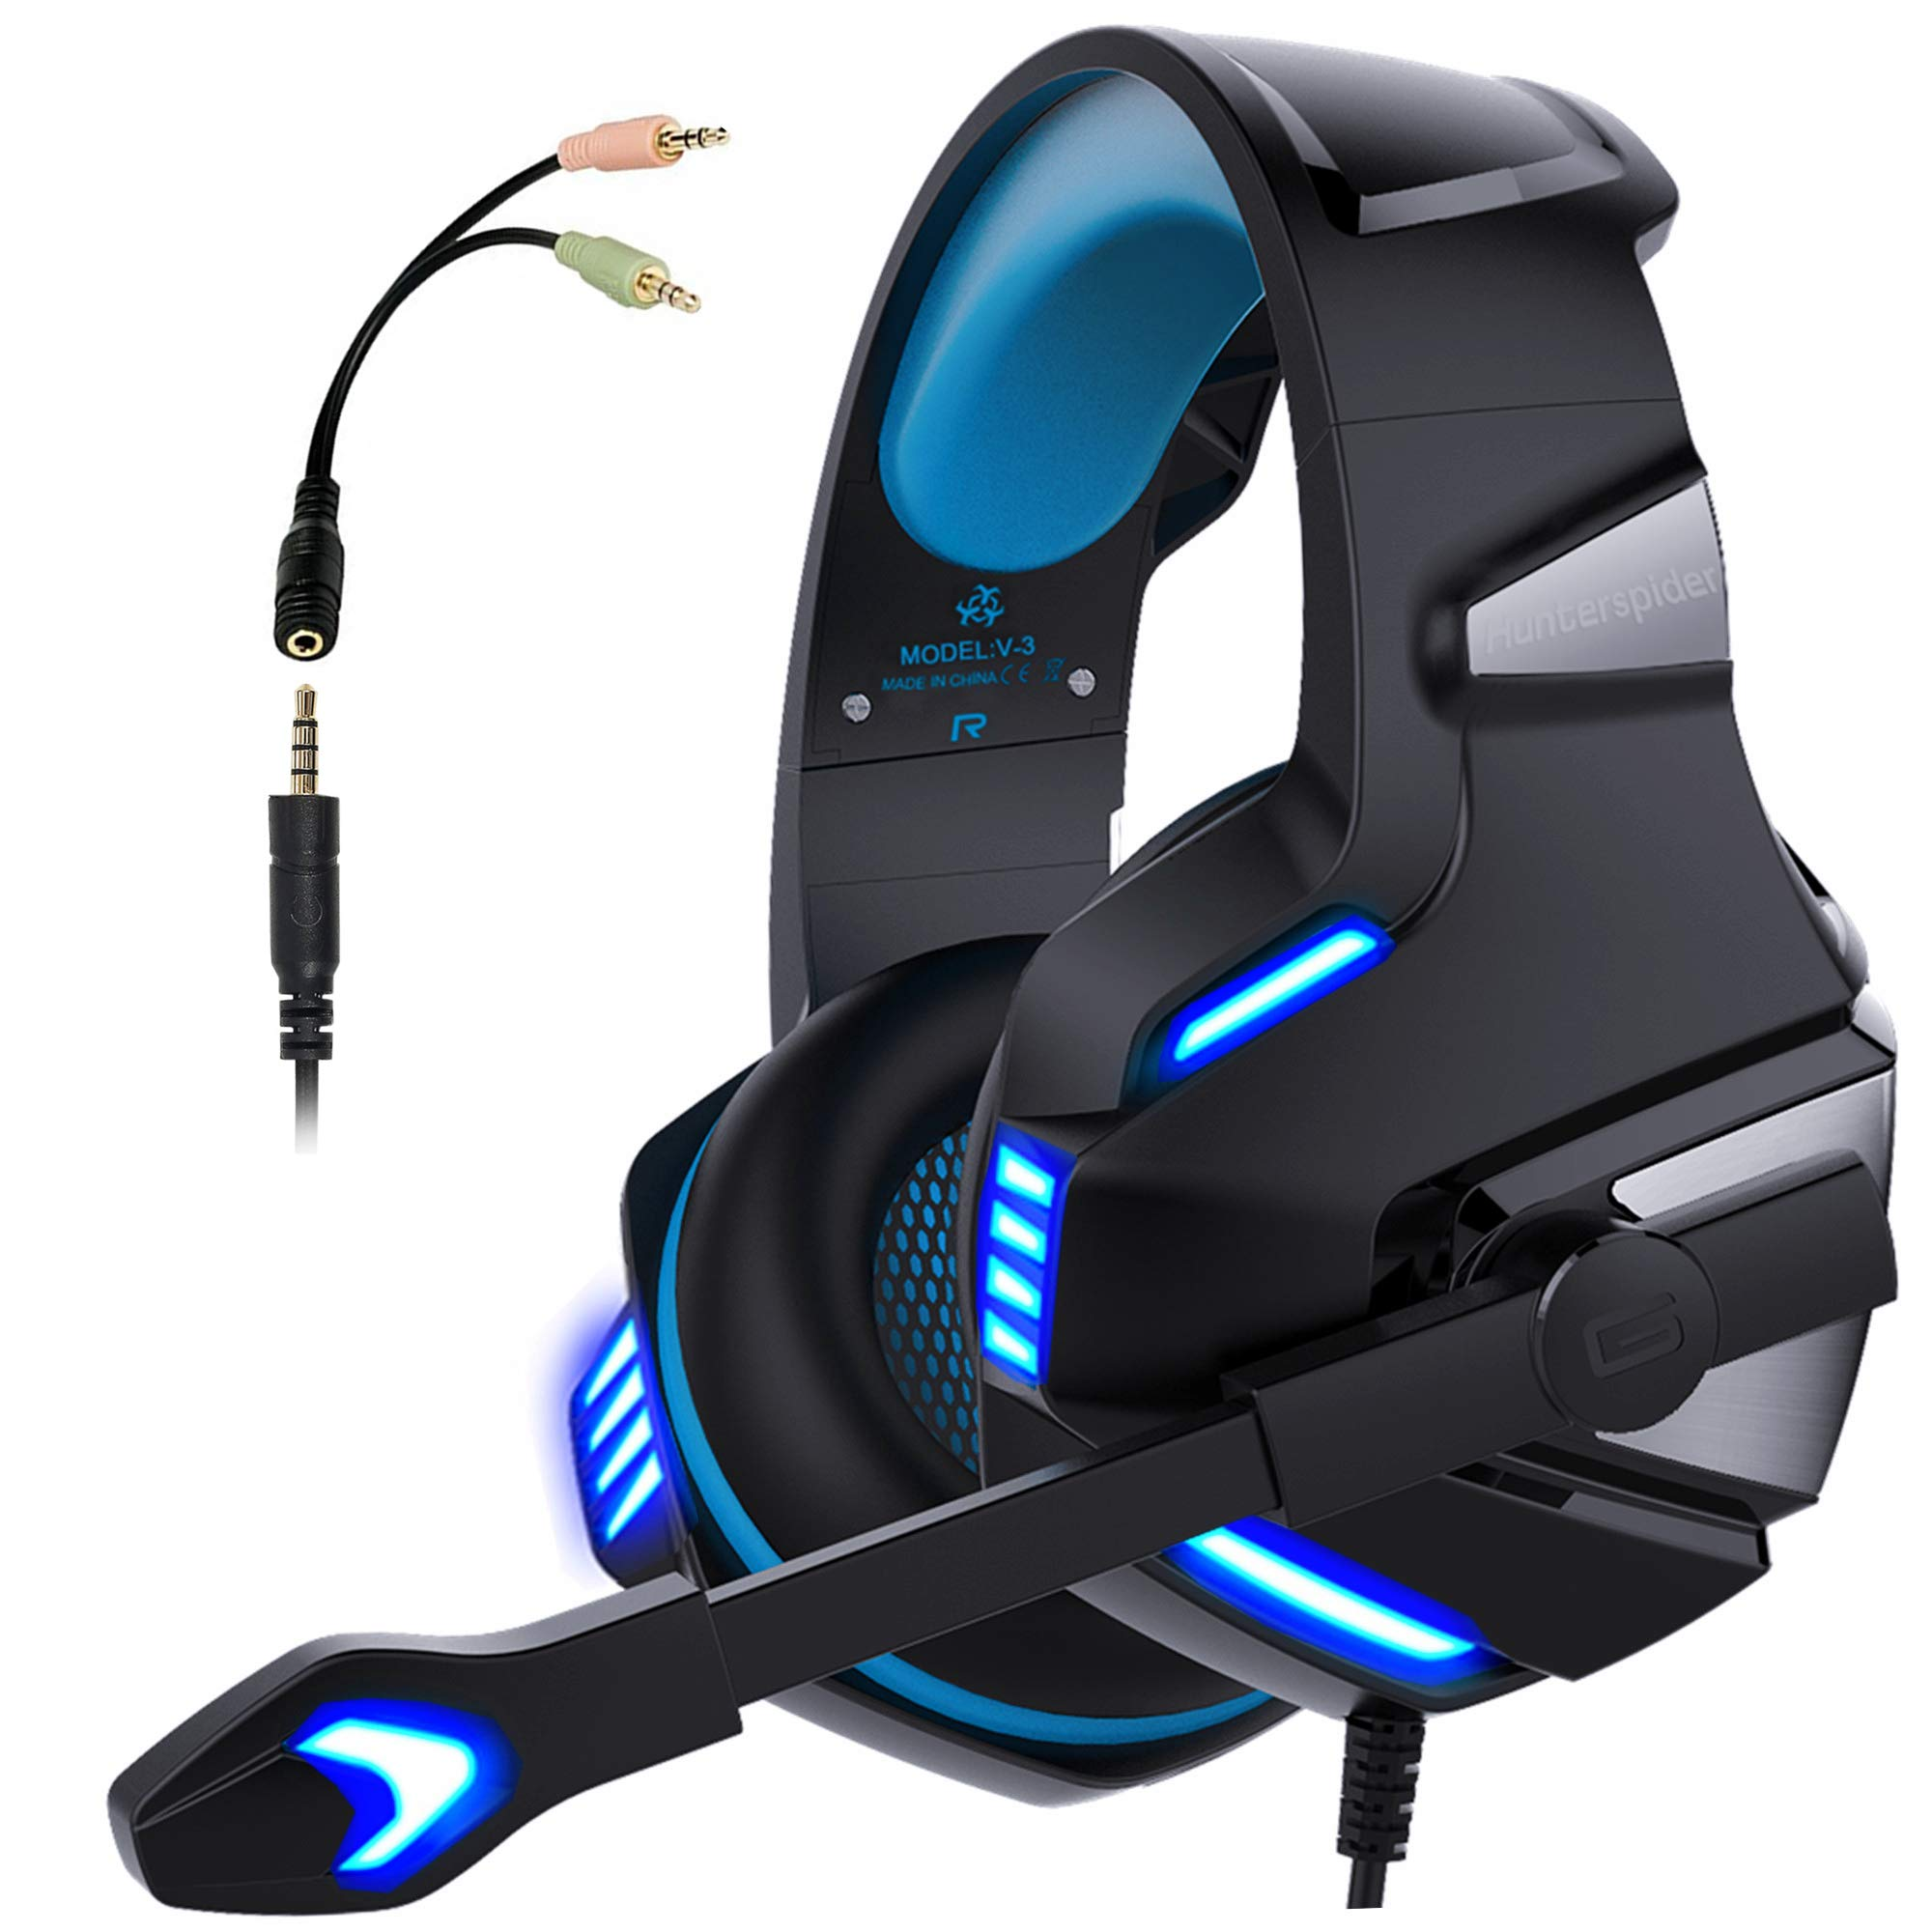 Micolindun V3blue Gaming Headset for PS4 Xbox One, Over Ear Gaming Headphones with Mic Stereo Surround Noise Reduction LED Lights Volume Control for Laptop, PC, Tablet, Smartphones, Blue product image